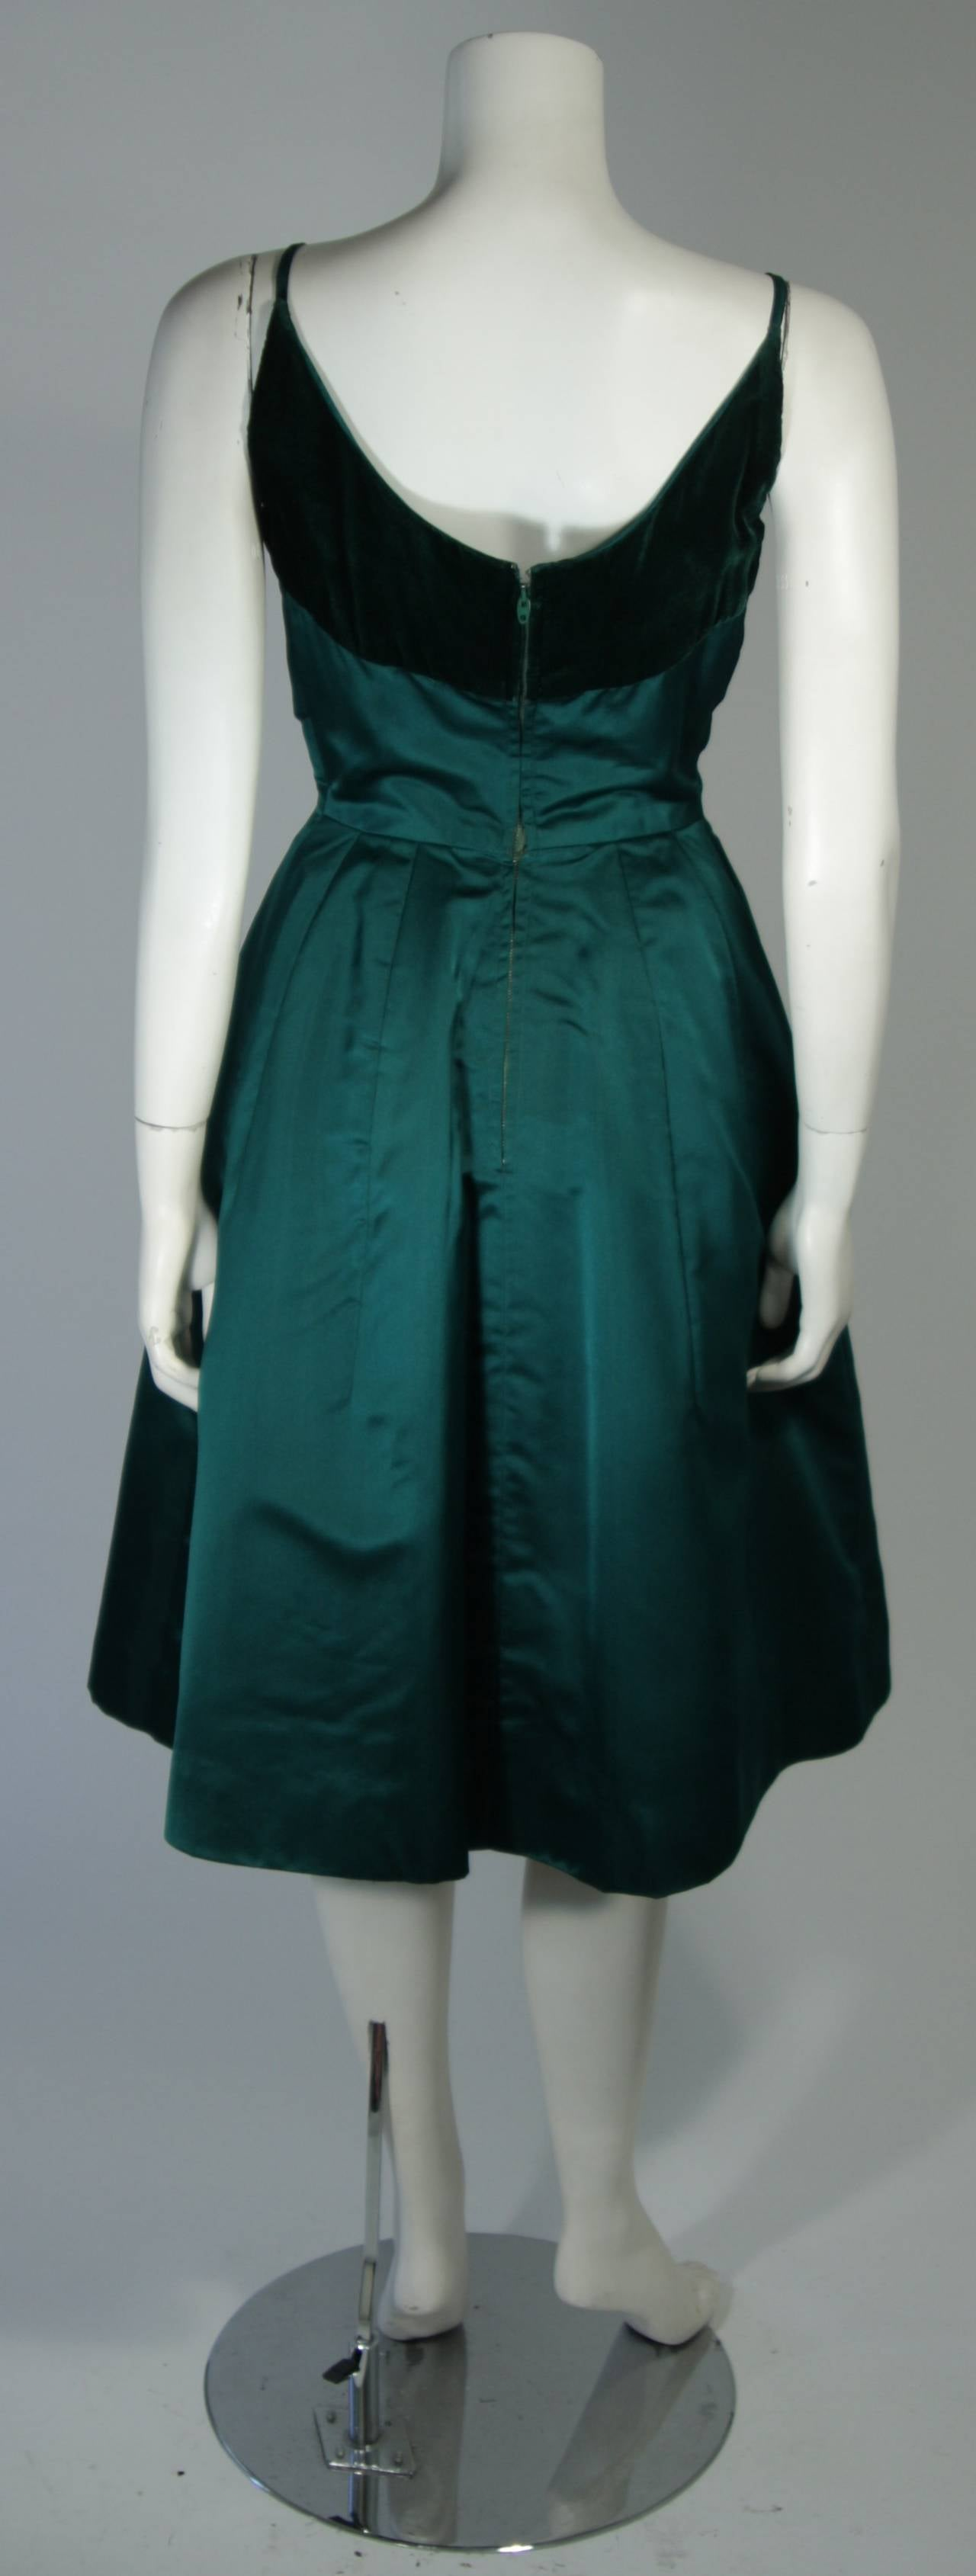 Oleg Cassini Emerald Silk and Velvet Applique Dress Size Small For Sale 3